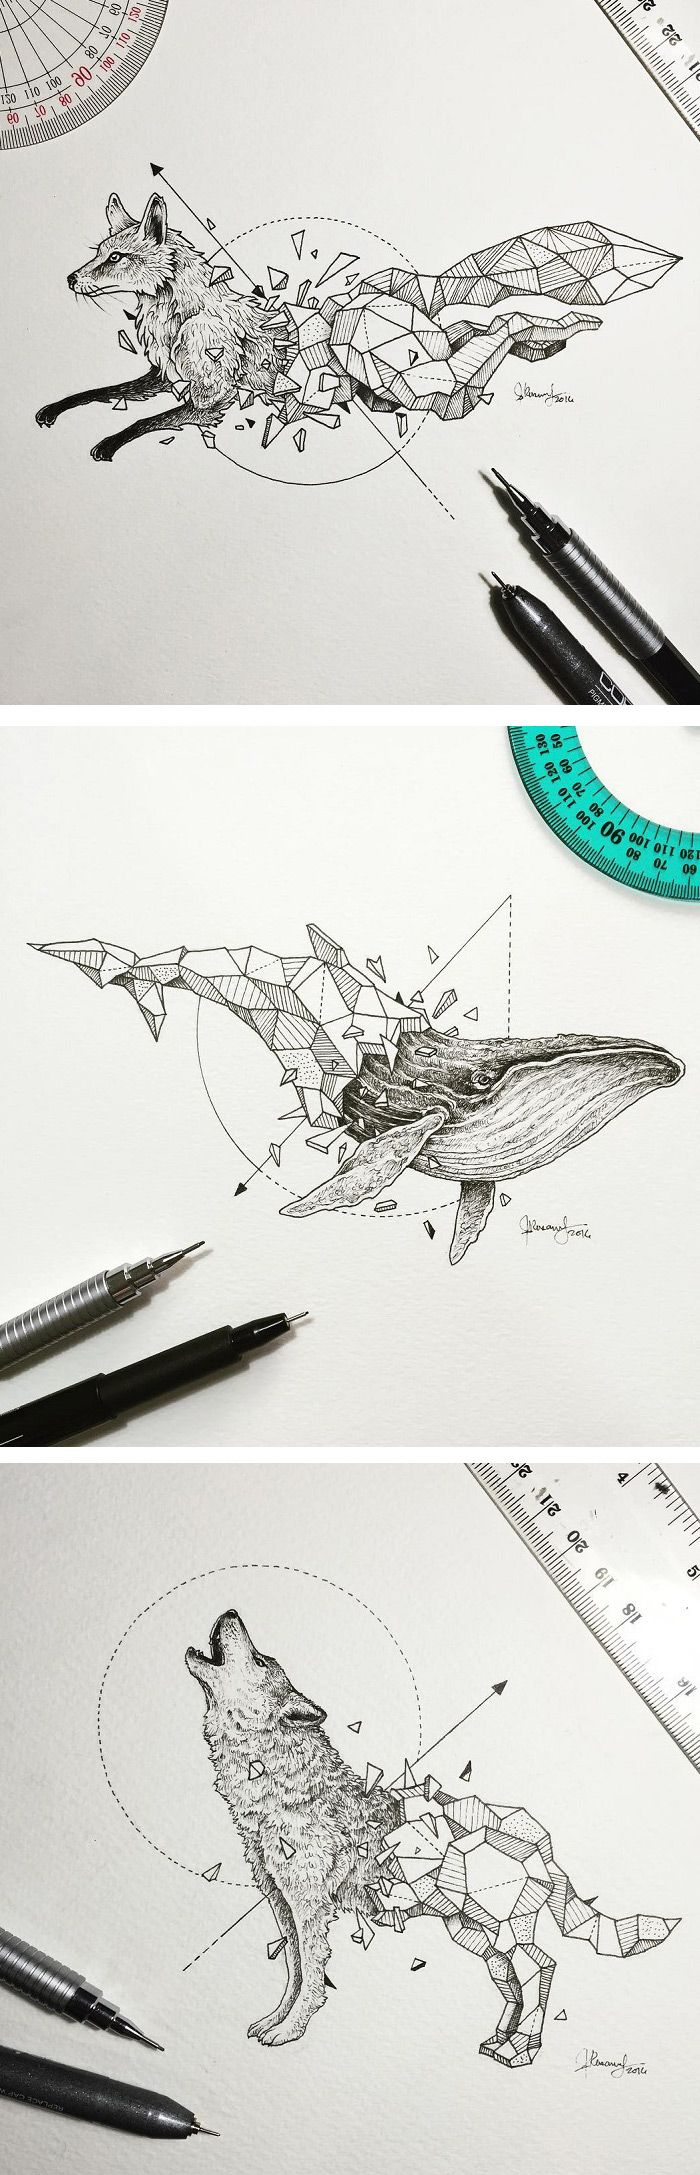 Wild Animal Illustrations Burst Out of Geometric EncasingsMy Modern Met